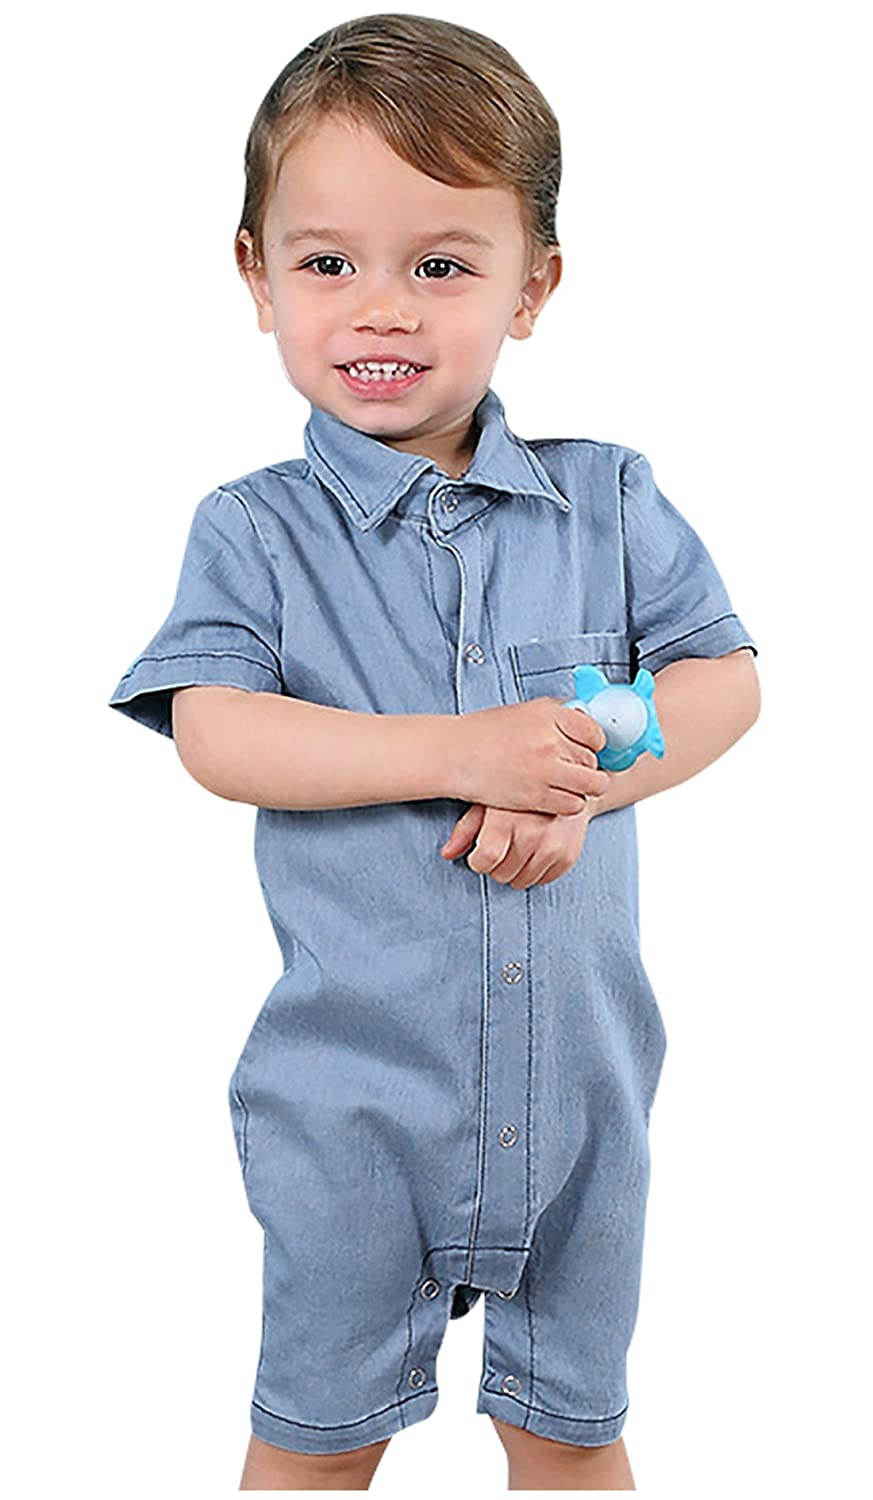 FEOYA Baby Boys Solid Short Sleeve Romper Summer Breathable Snap-up Creeper Jumpsuit with Pocket